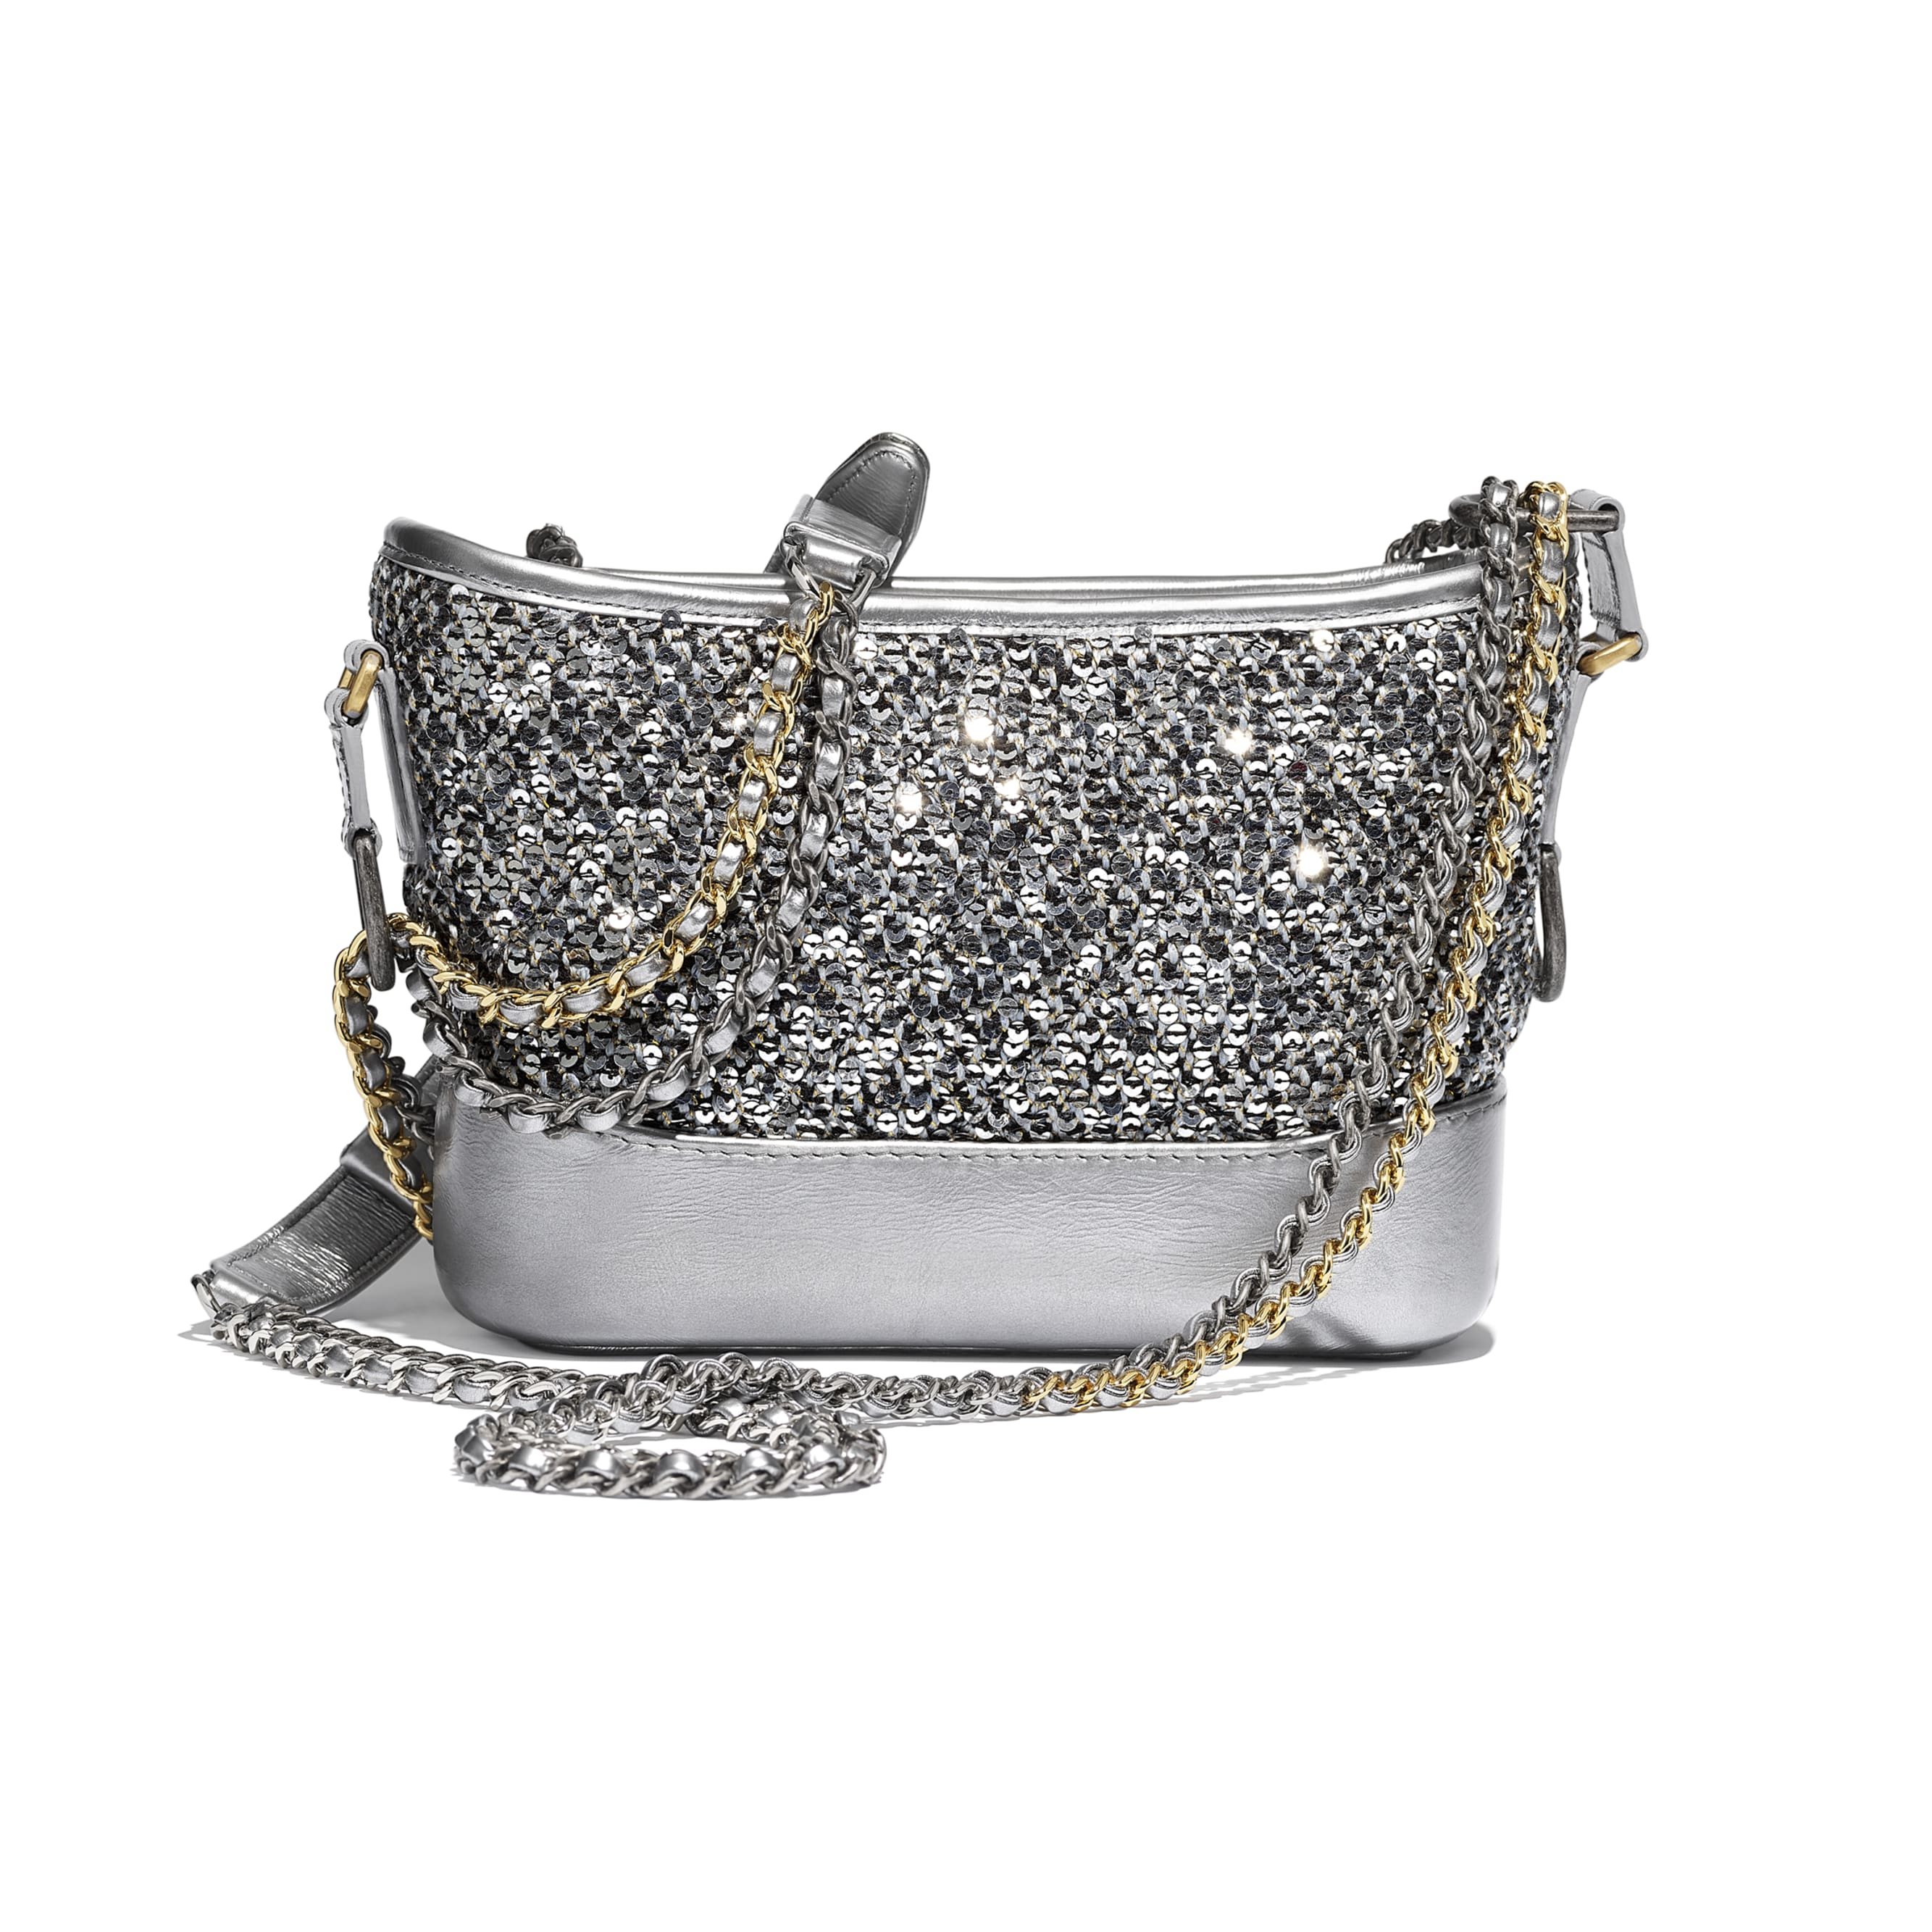 CHANEL'S GABRIELLE Small Hobo Bag - Silver, Black & Gold - Tweed, Sequins, Calfskin, Gold-Tone, Silver-Tone & Ruthenium-Finish Metal - CHANEL - Alternative view - see standard sized version